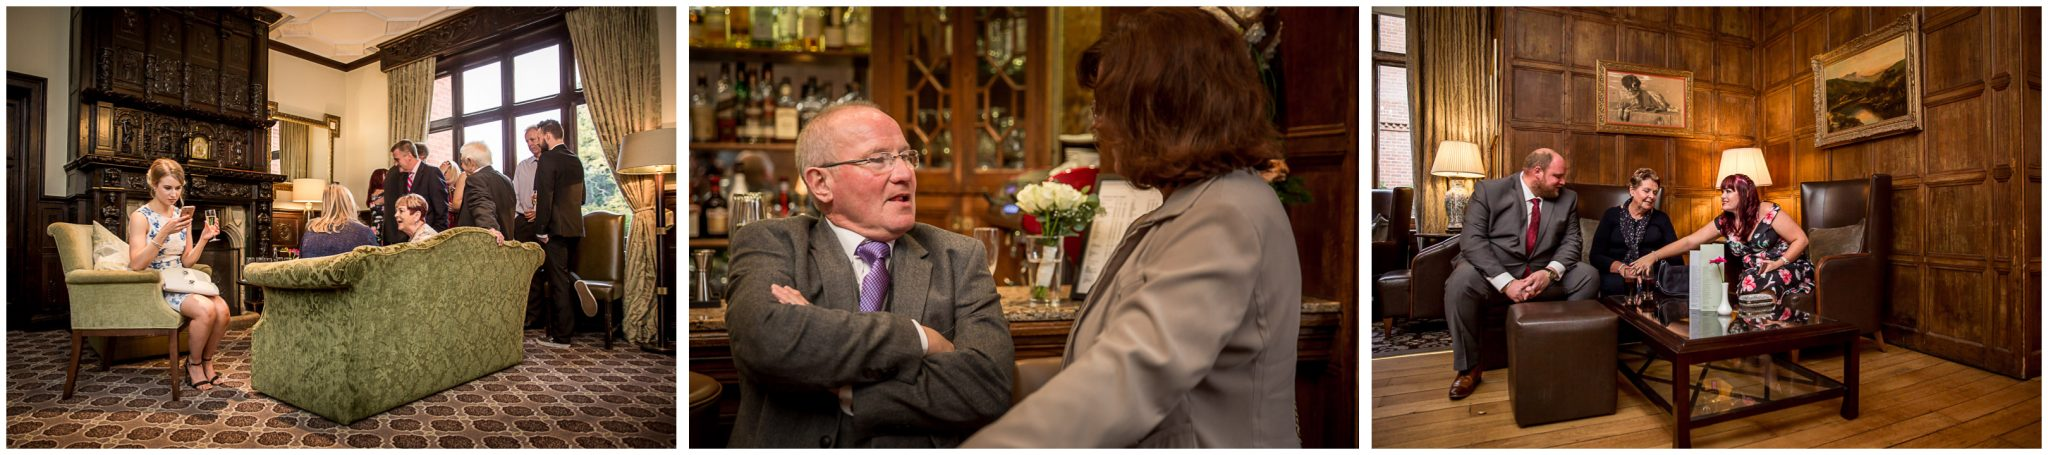 Audleys Wood wedding photograhy guests in the lounge